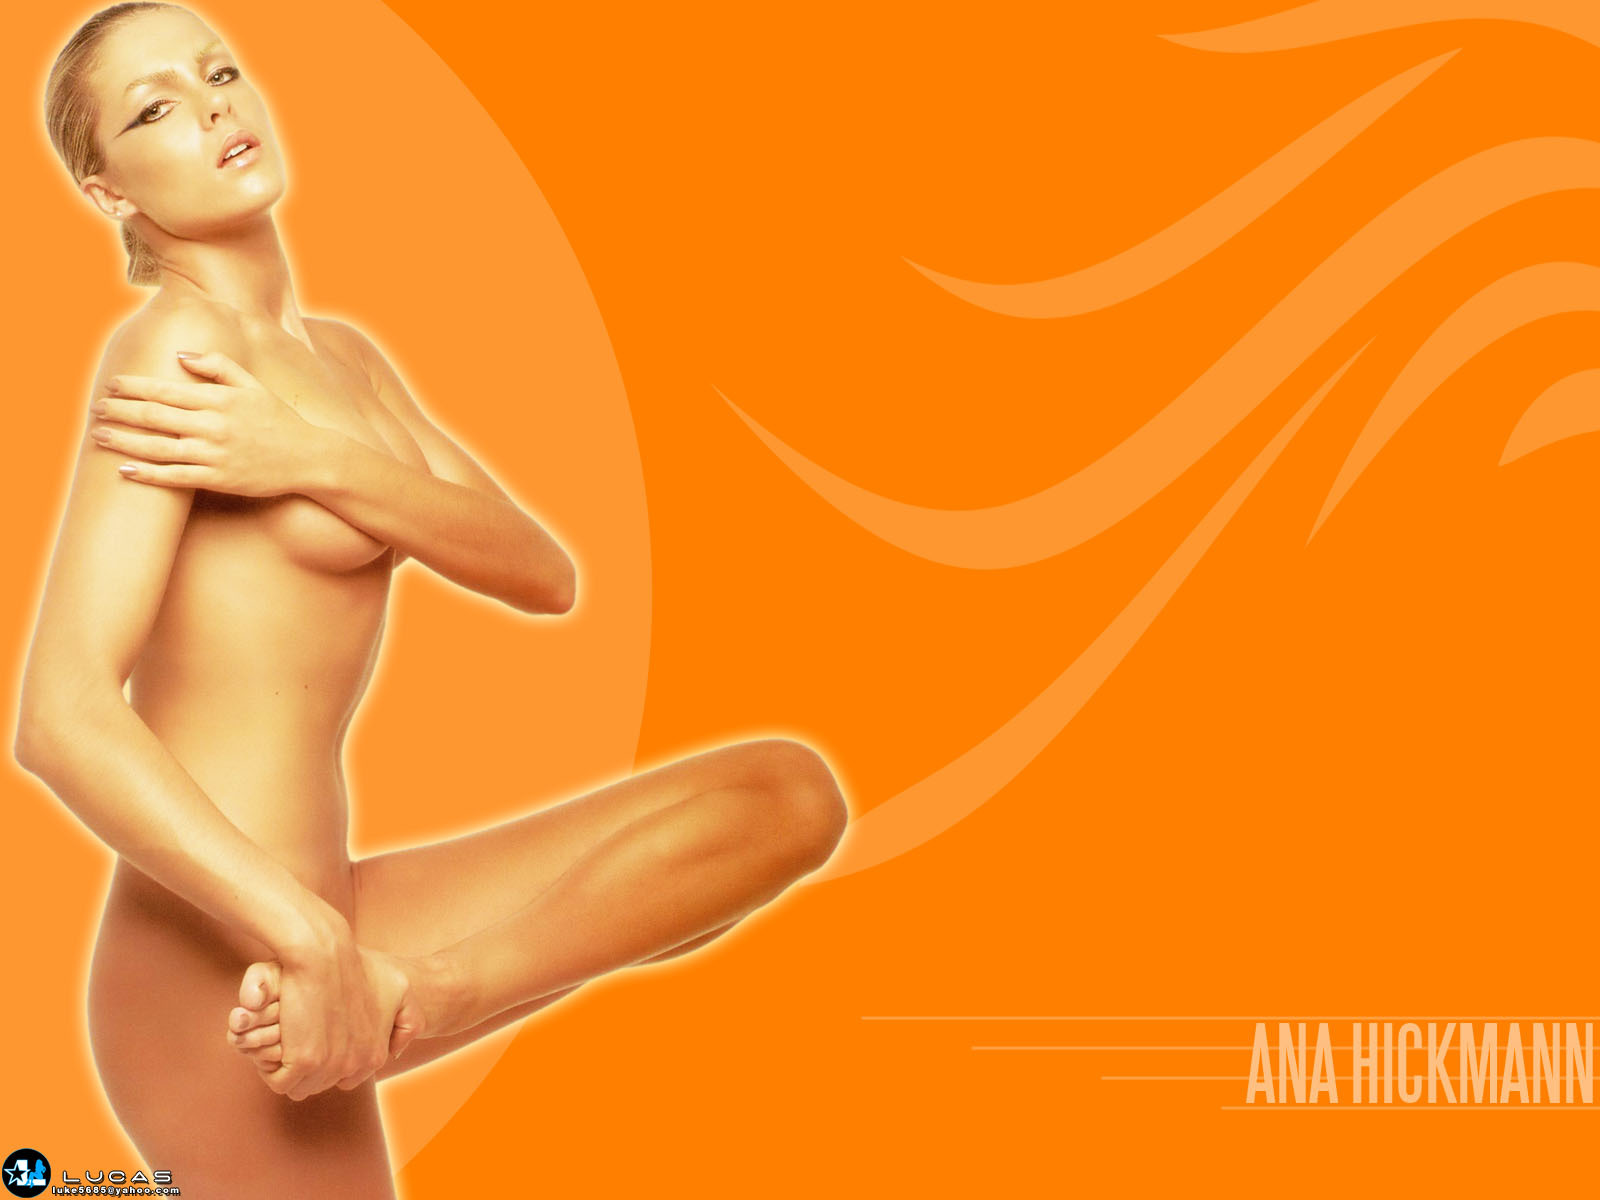 hickmann ana HD Wallpaper